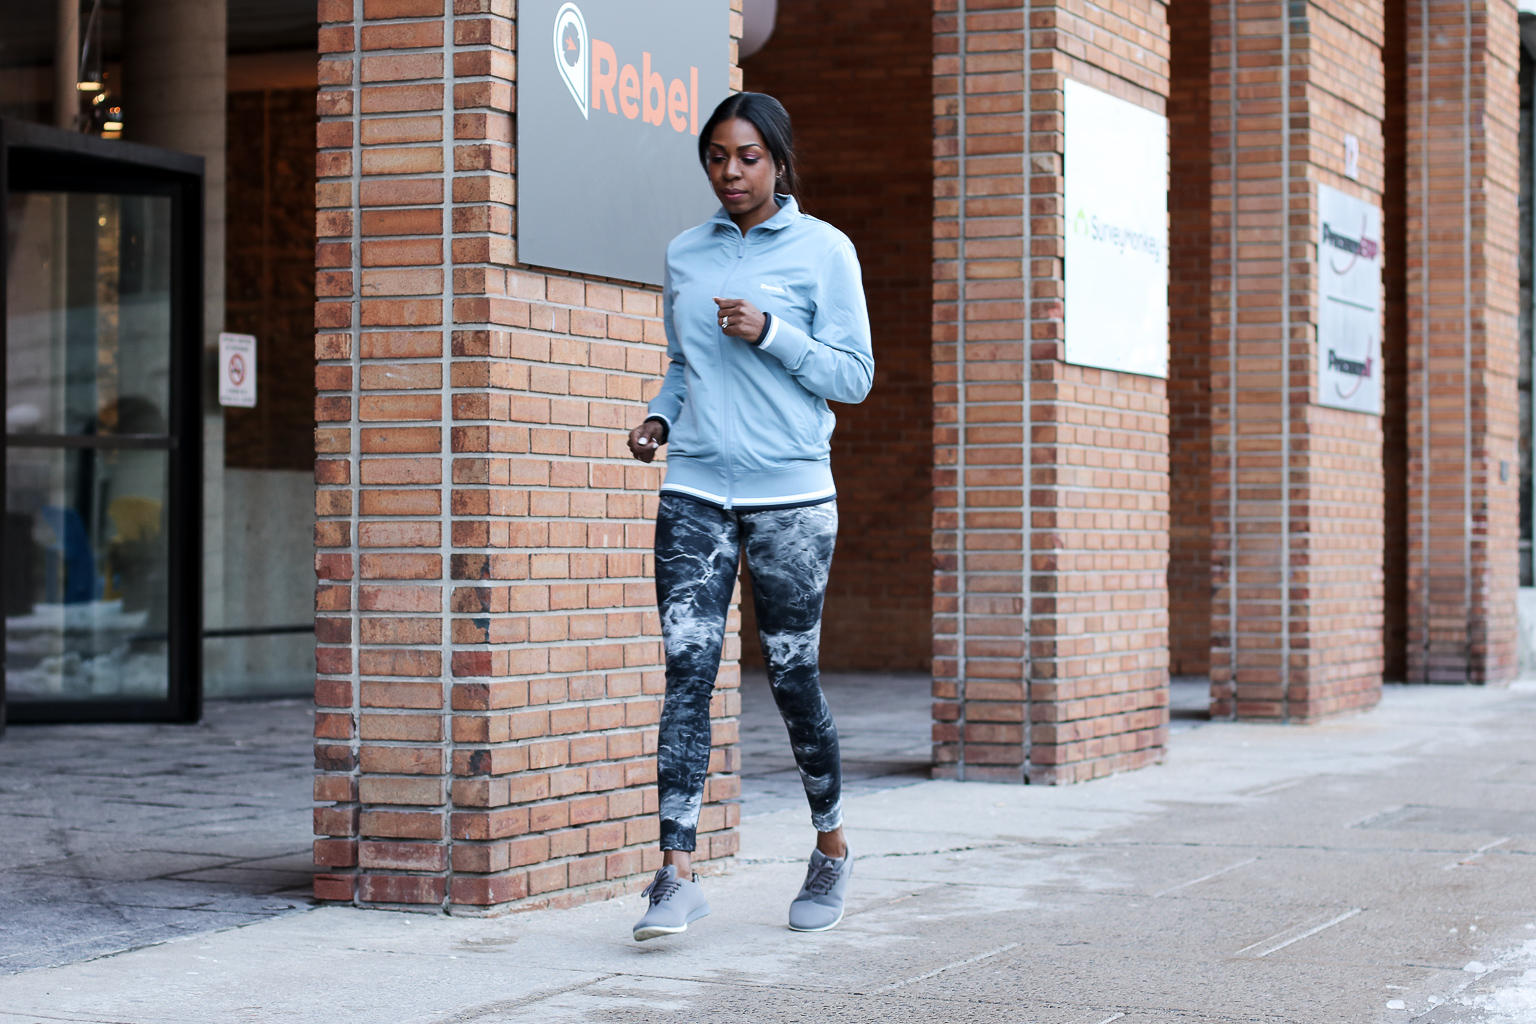 Bench Canada has everything you need to look great during your winter workout | Winter Workout Style - Bench Canada